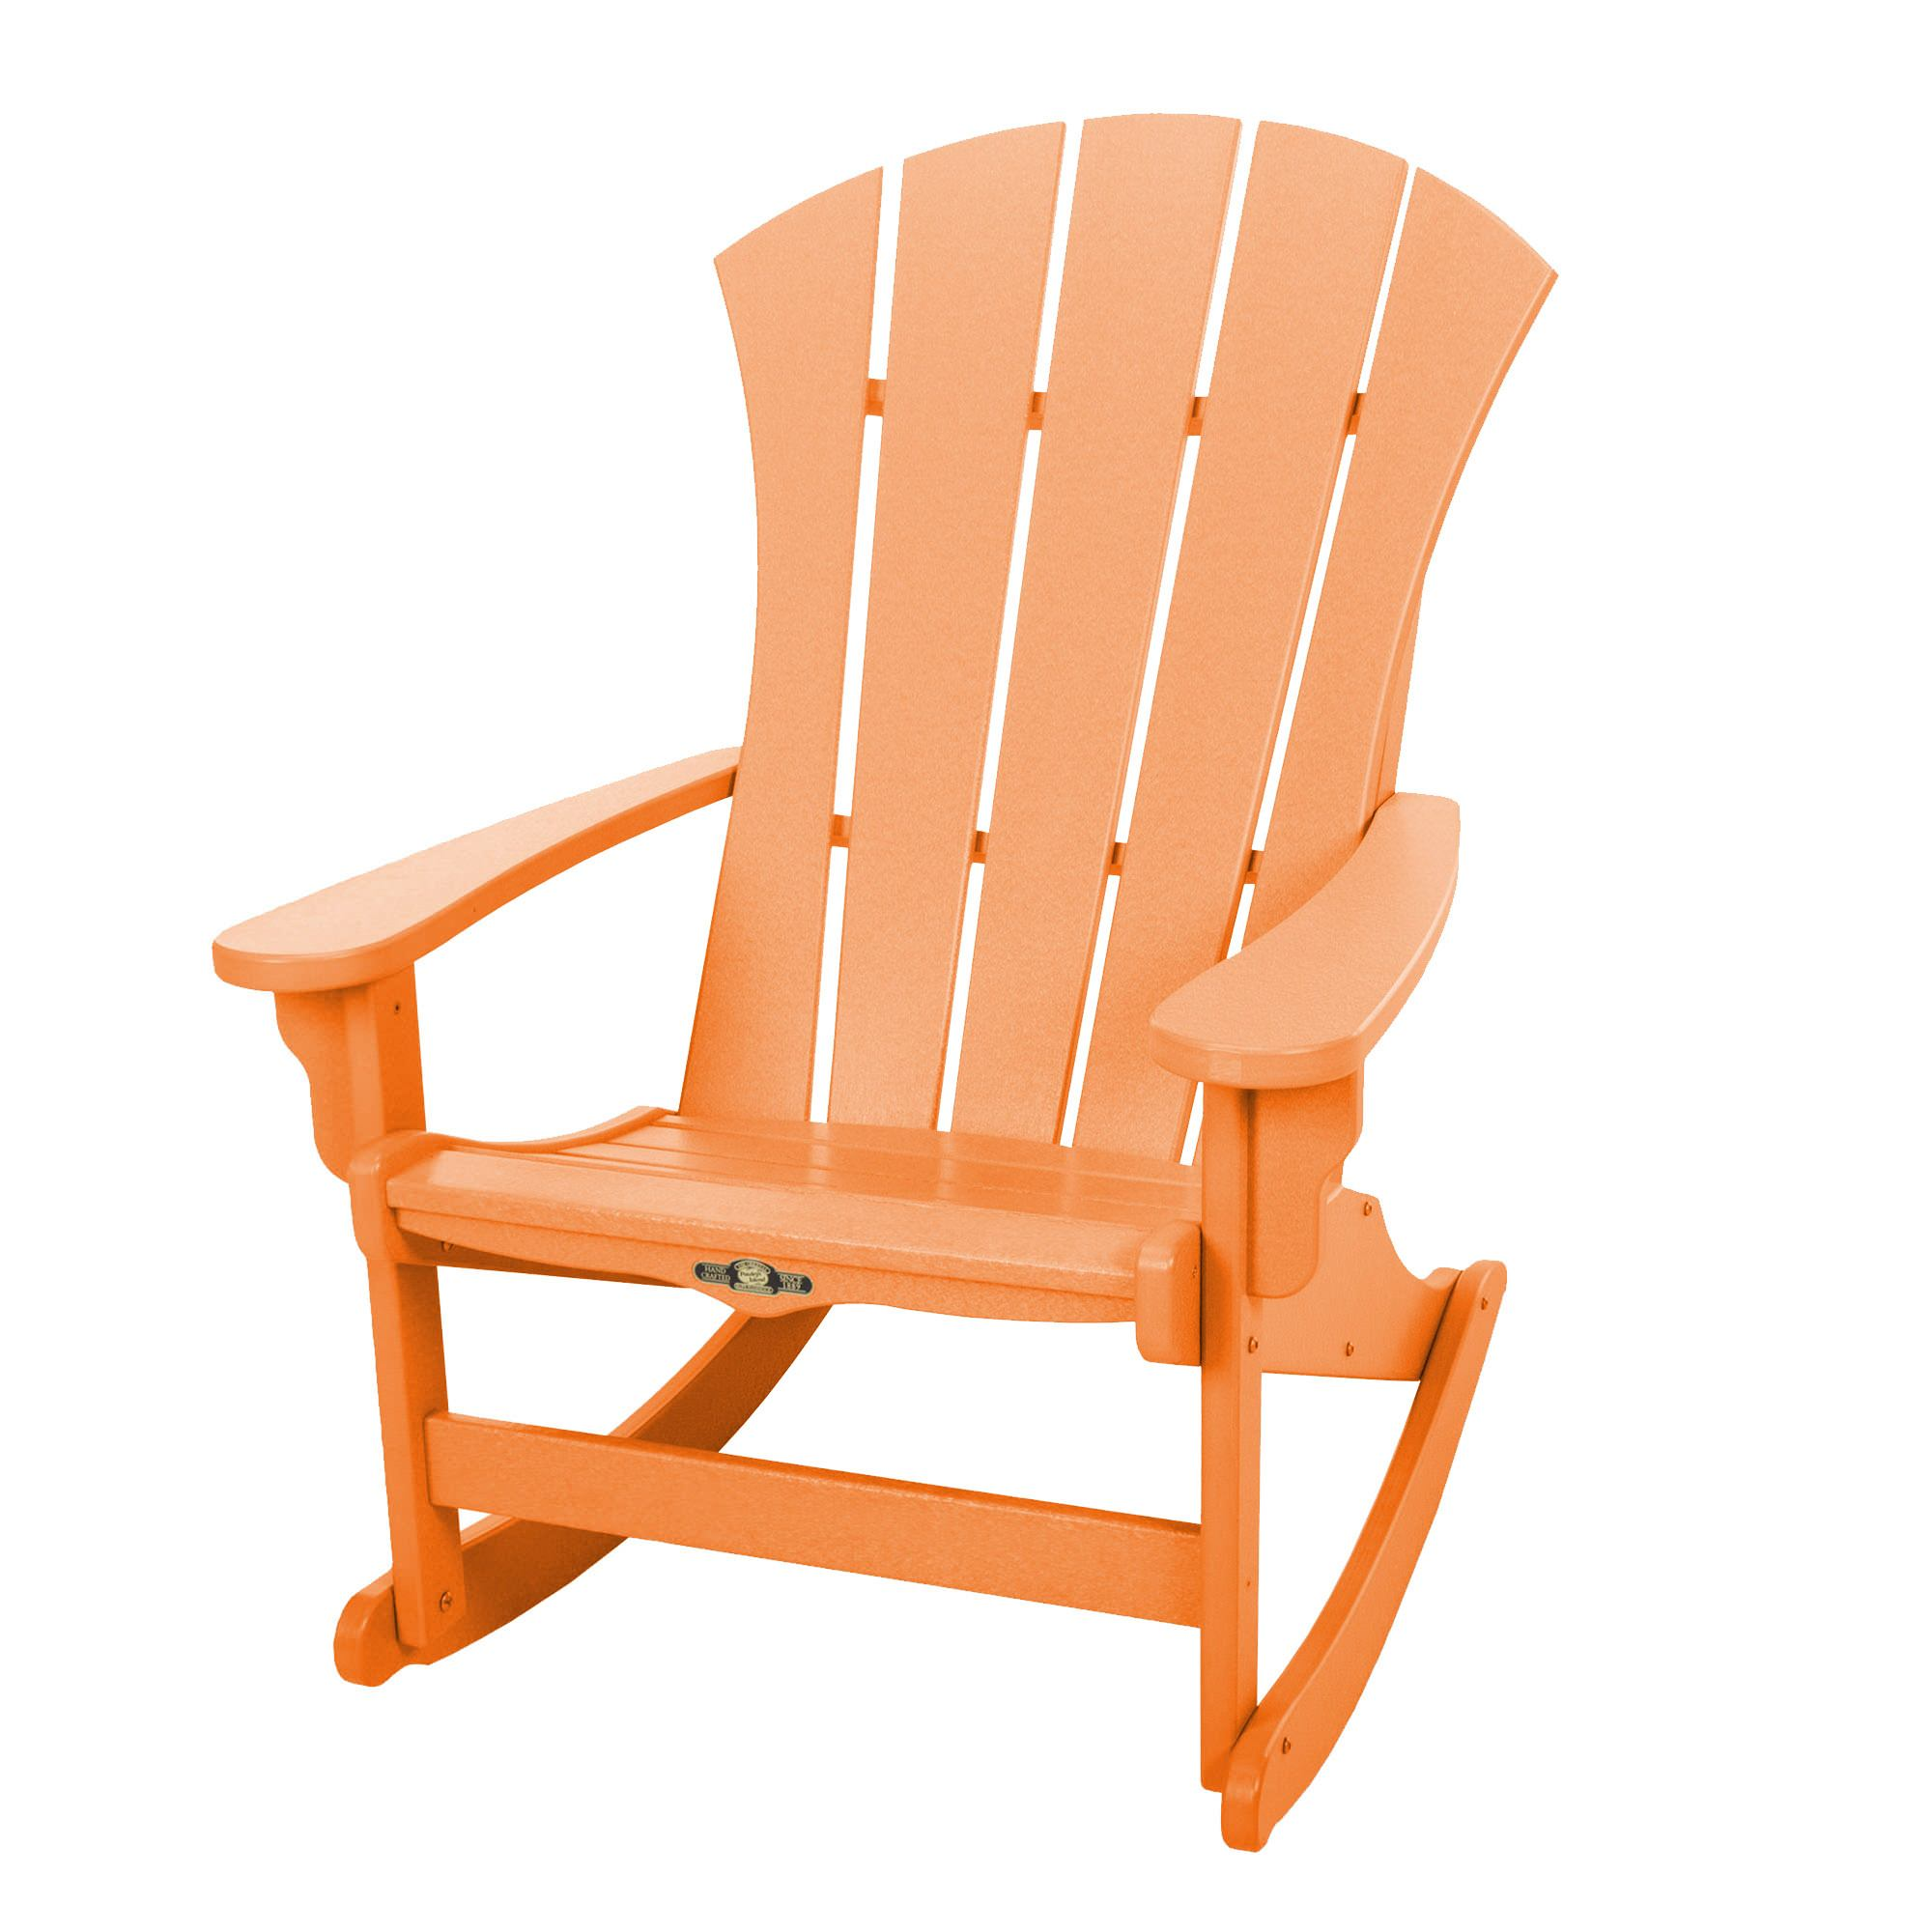 Shop Durawood Sunrise Adirondack Rockers on Sale